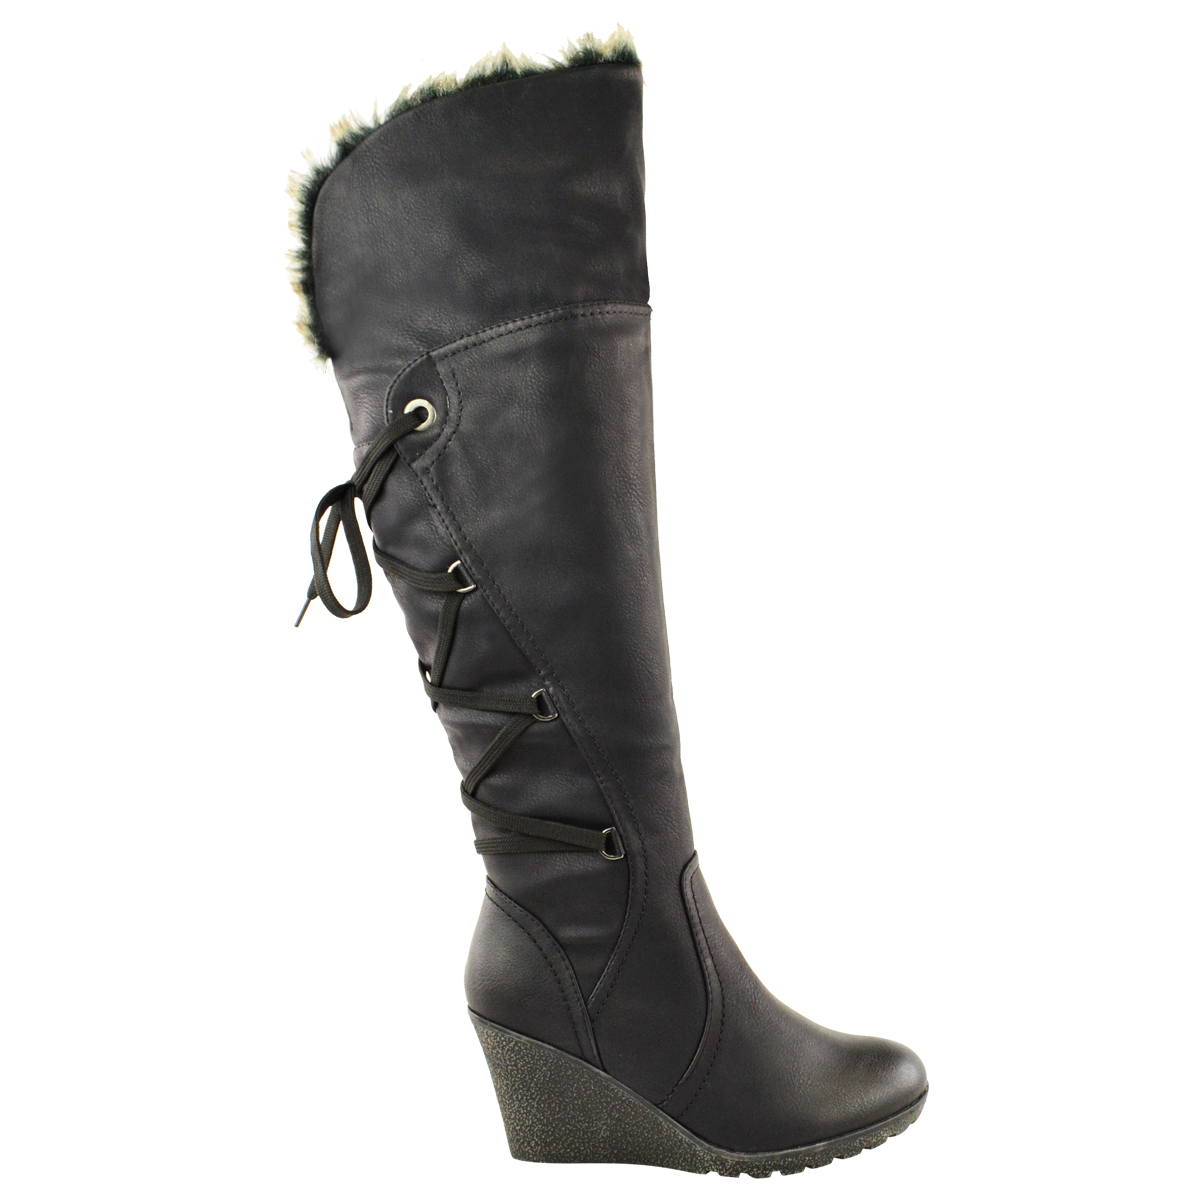 WOMENS-LADIES-MID-WEDGE-HIGH-HEEL-FUR-LINED-WARM-WINTER-KNEE-CALF-ZIP-BOOTS-SIZE thumbnail 9